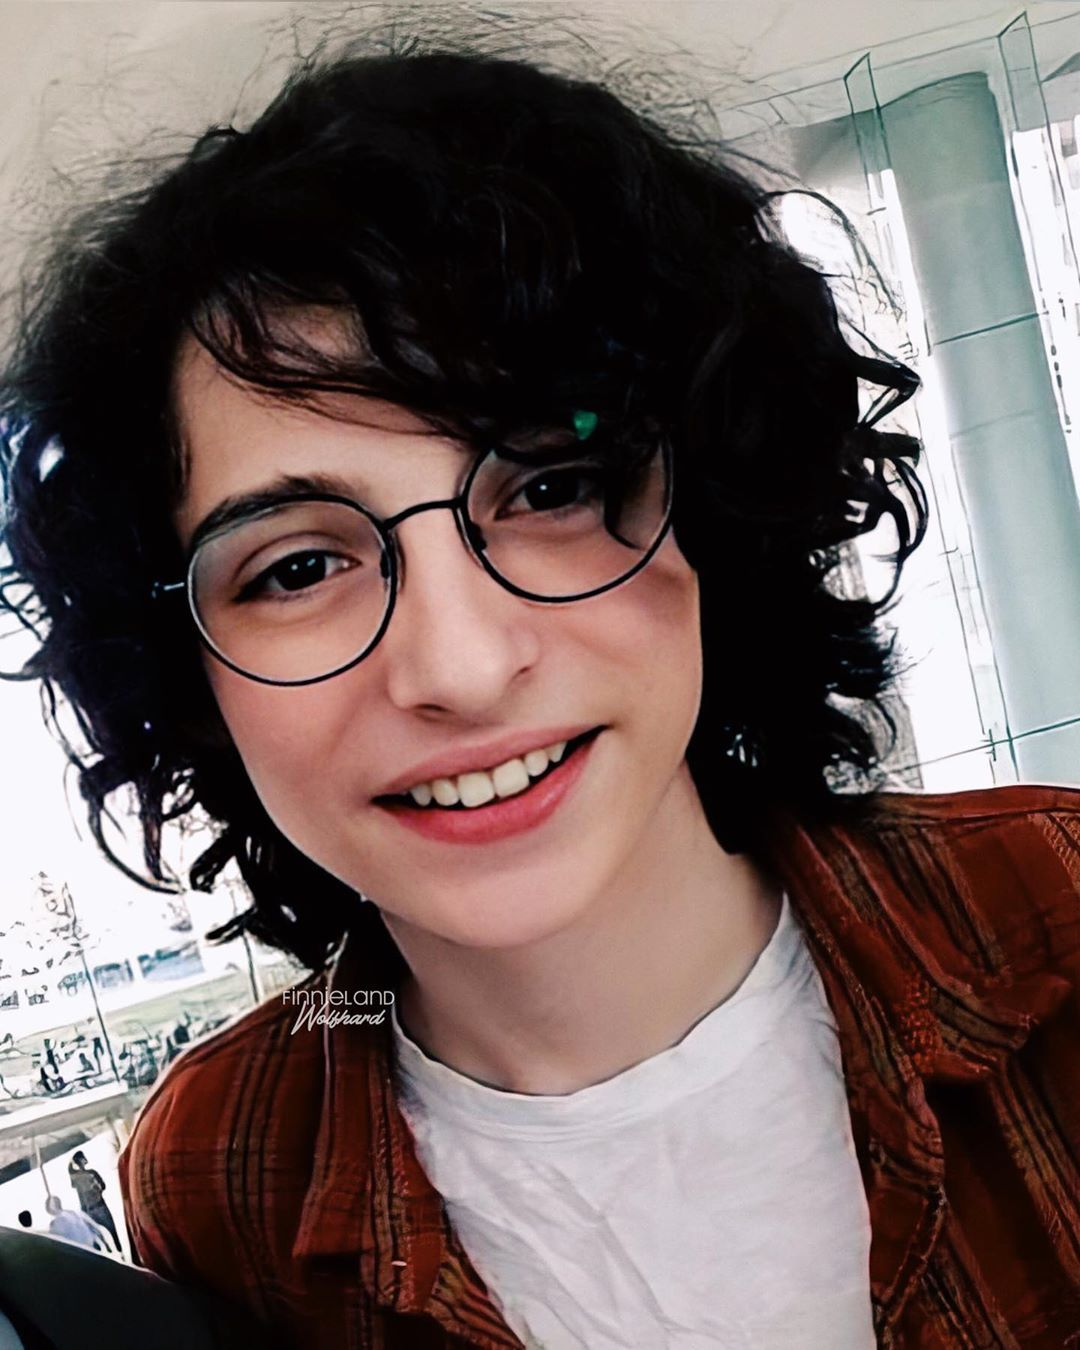 Pin by Hannah🪐 on Finn Wolfhard in 2020 (With images